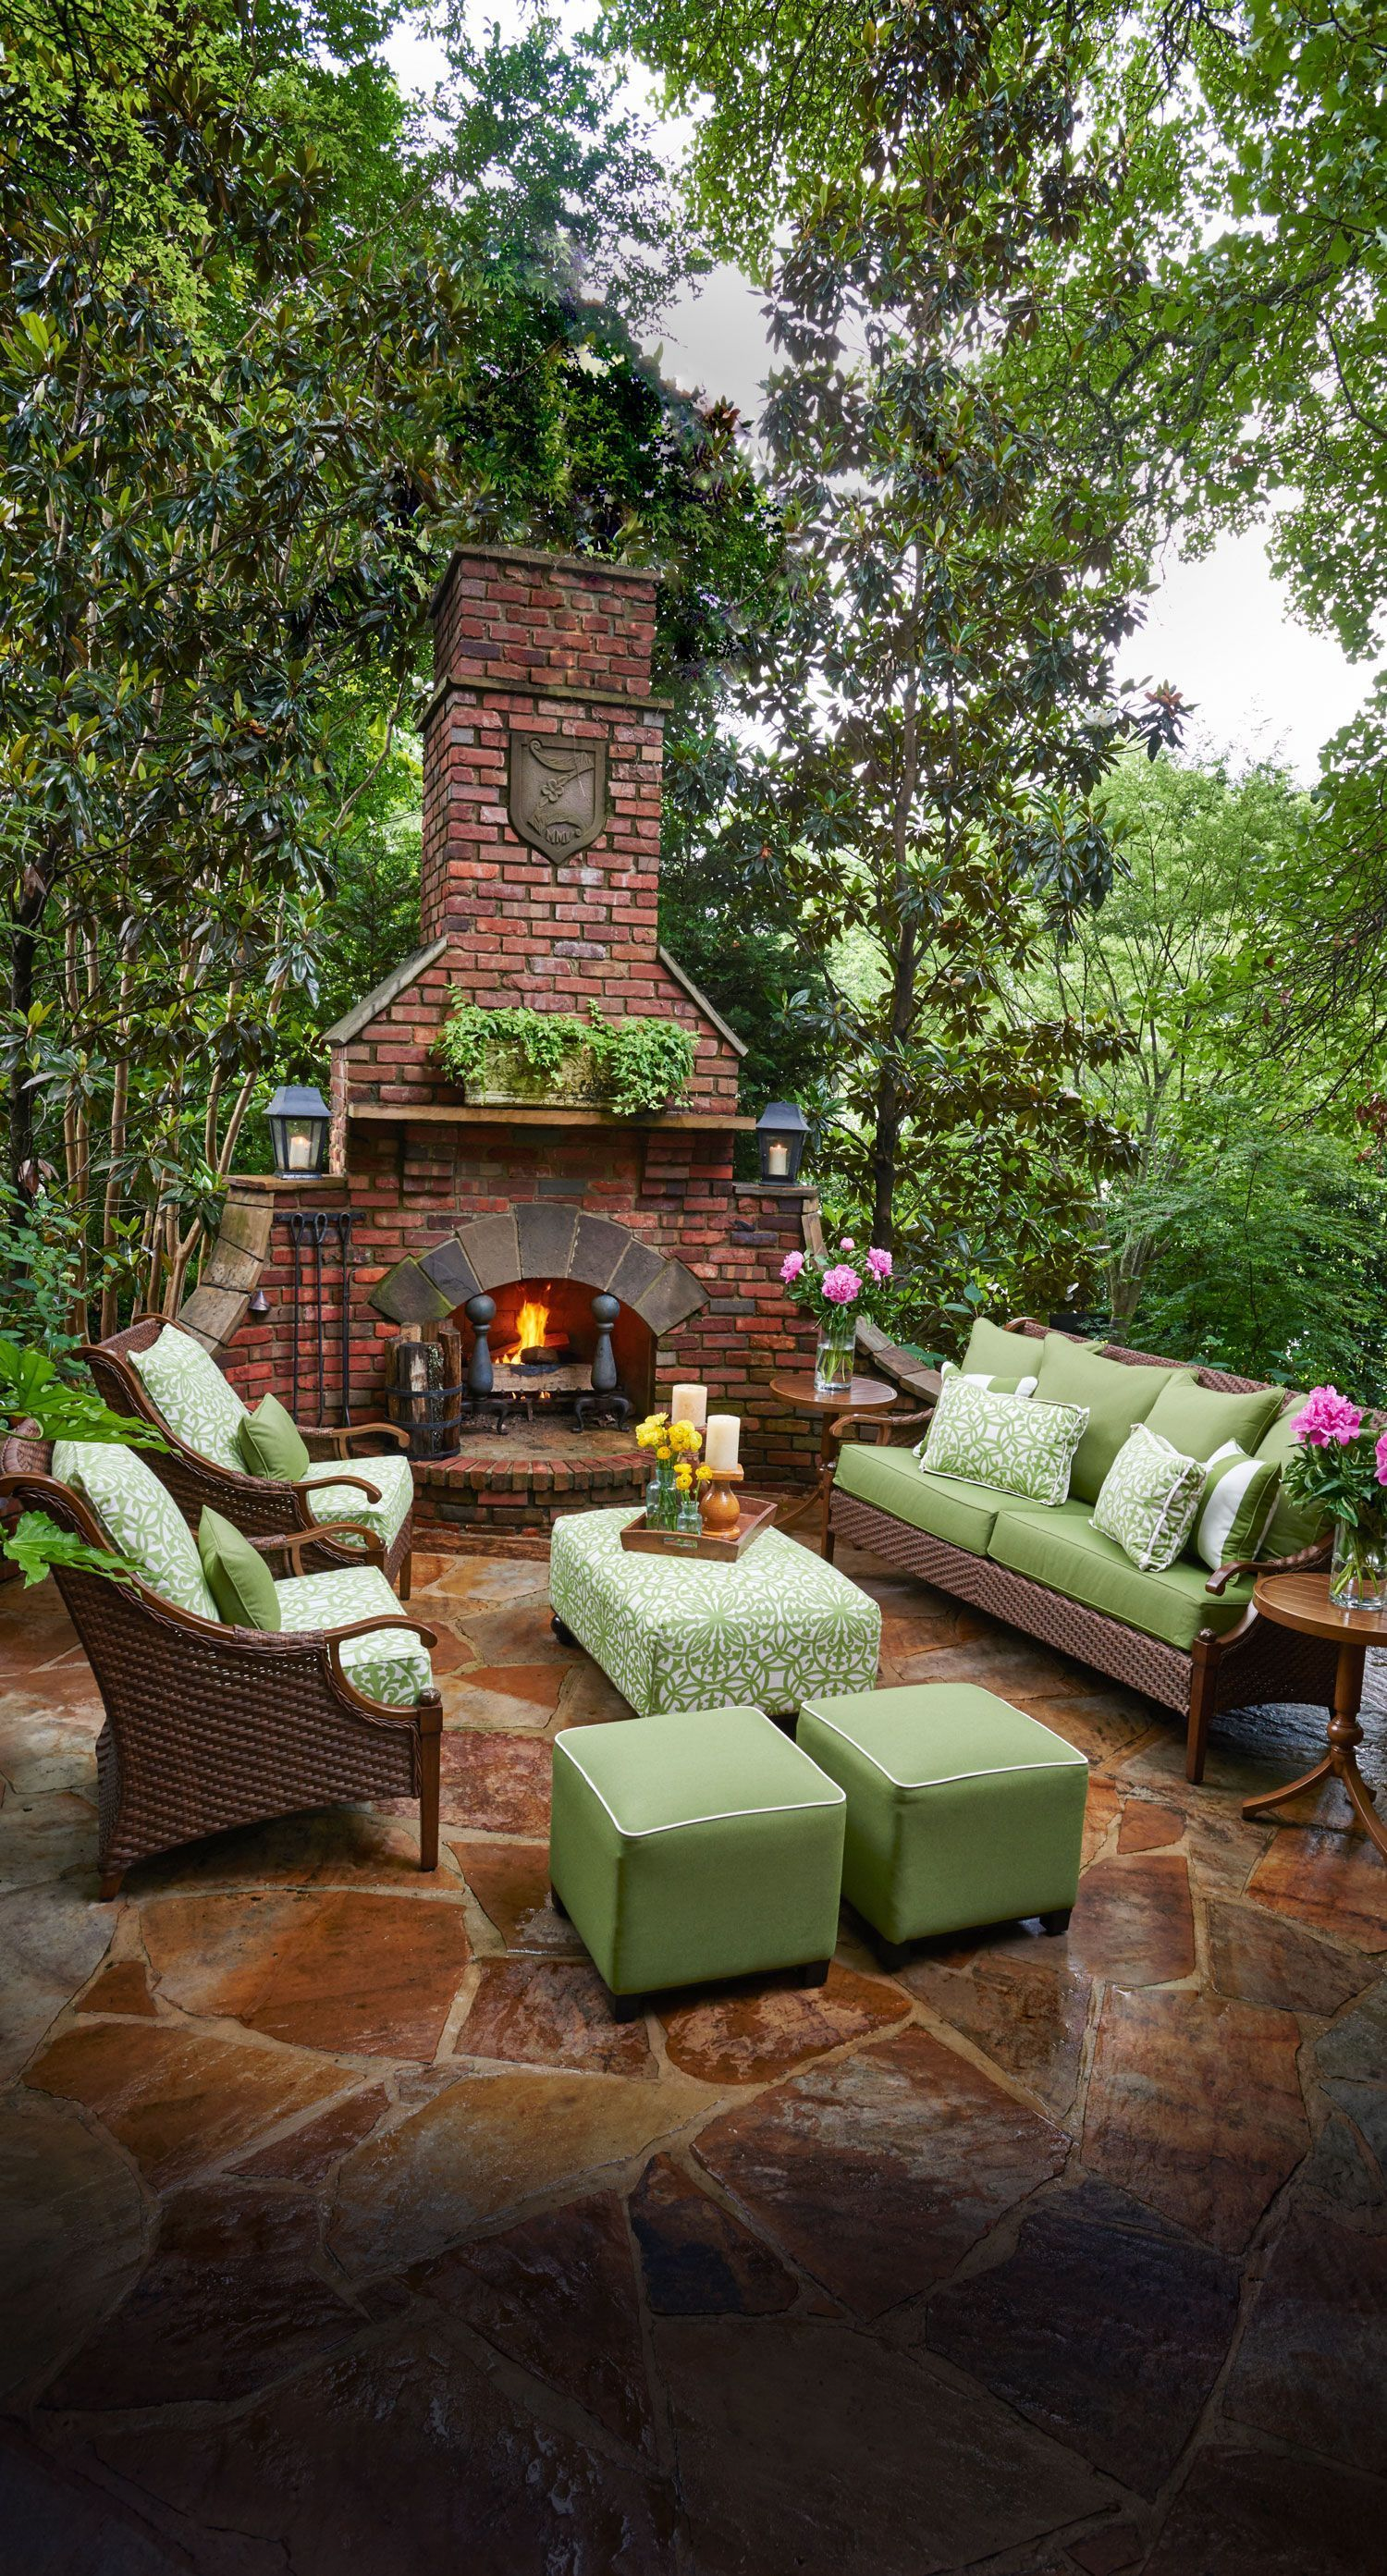 Browse Pictures Of Outdoor Kitchen Designs Outdoor Kitchen Plans And Outdoor Kitchen Essen Rustic Outdoor Fireplaces Outdoor Fireplace Designs Rustic Outdoor